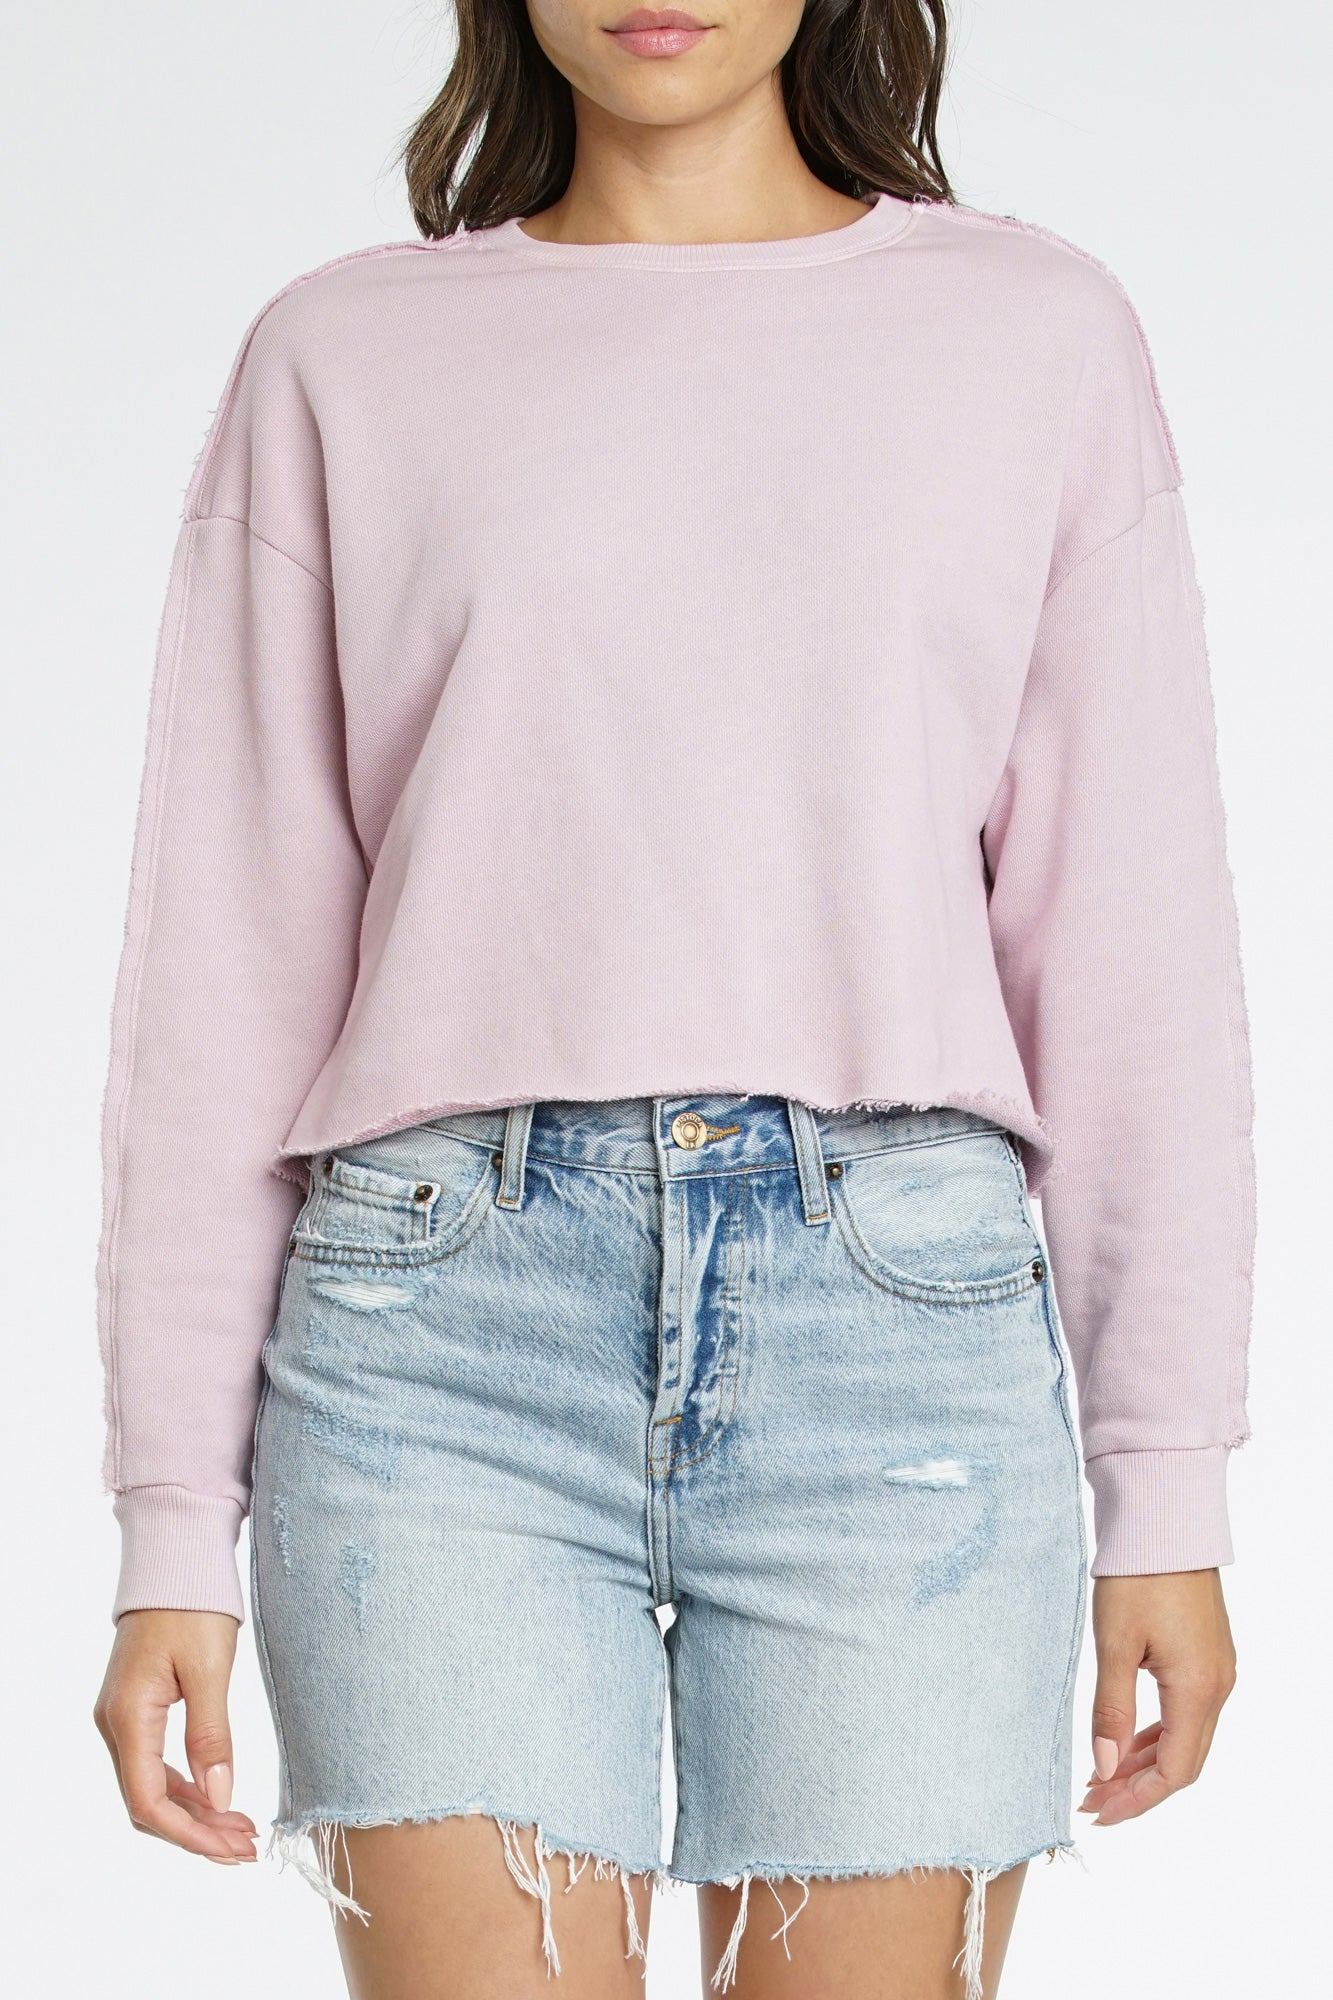 Leon Frayed Seam Sweatshirt - Melrose